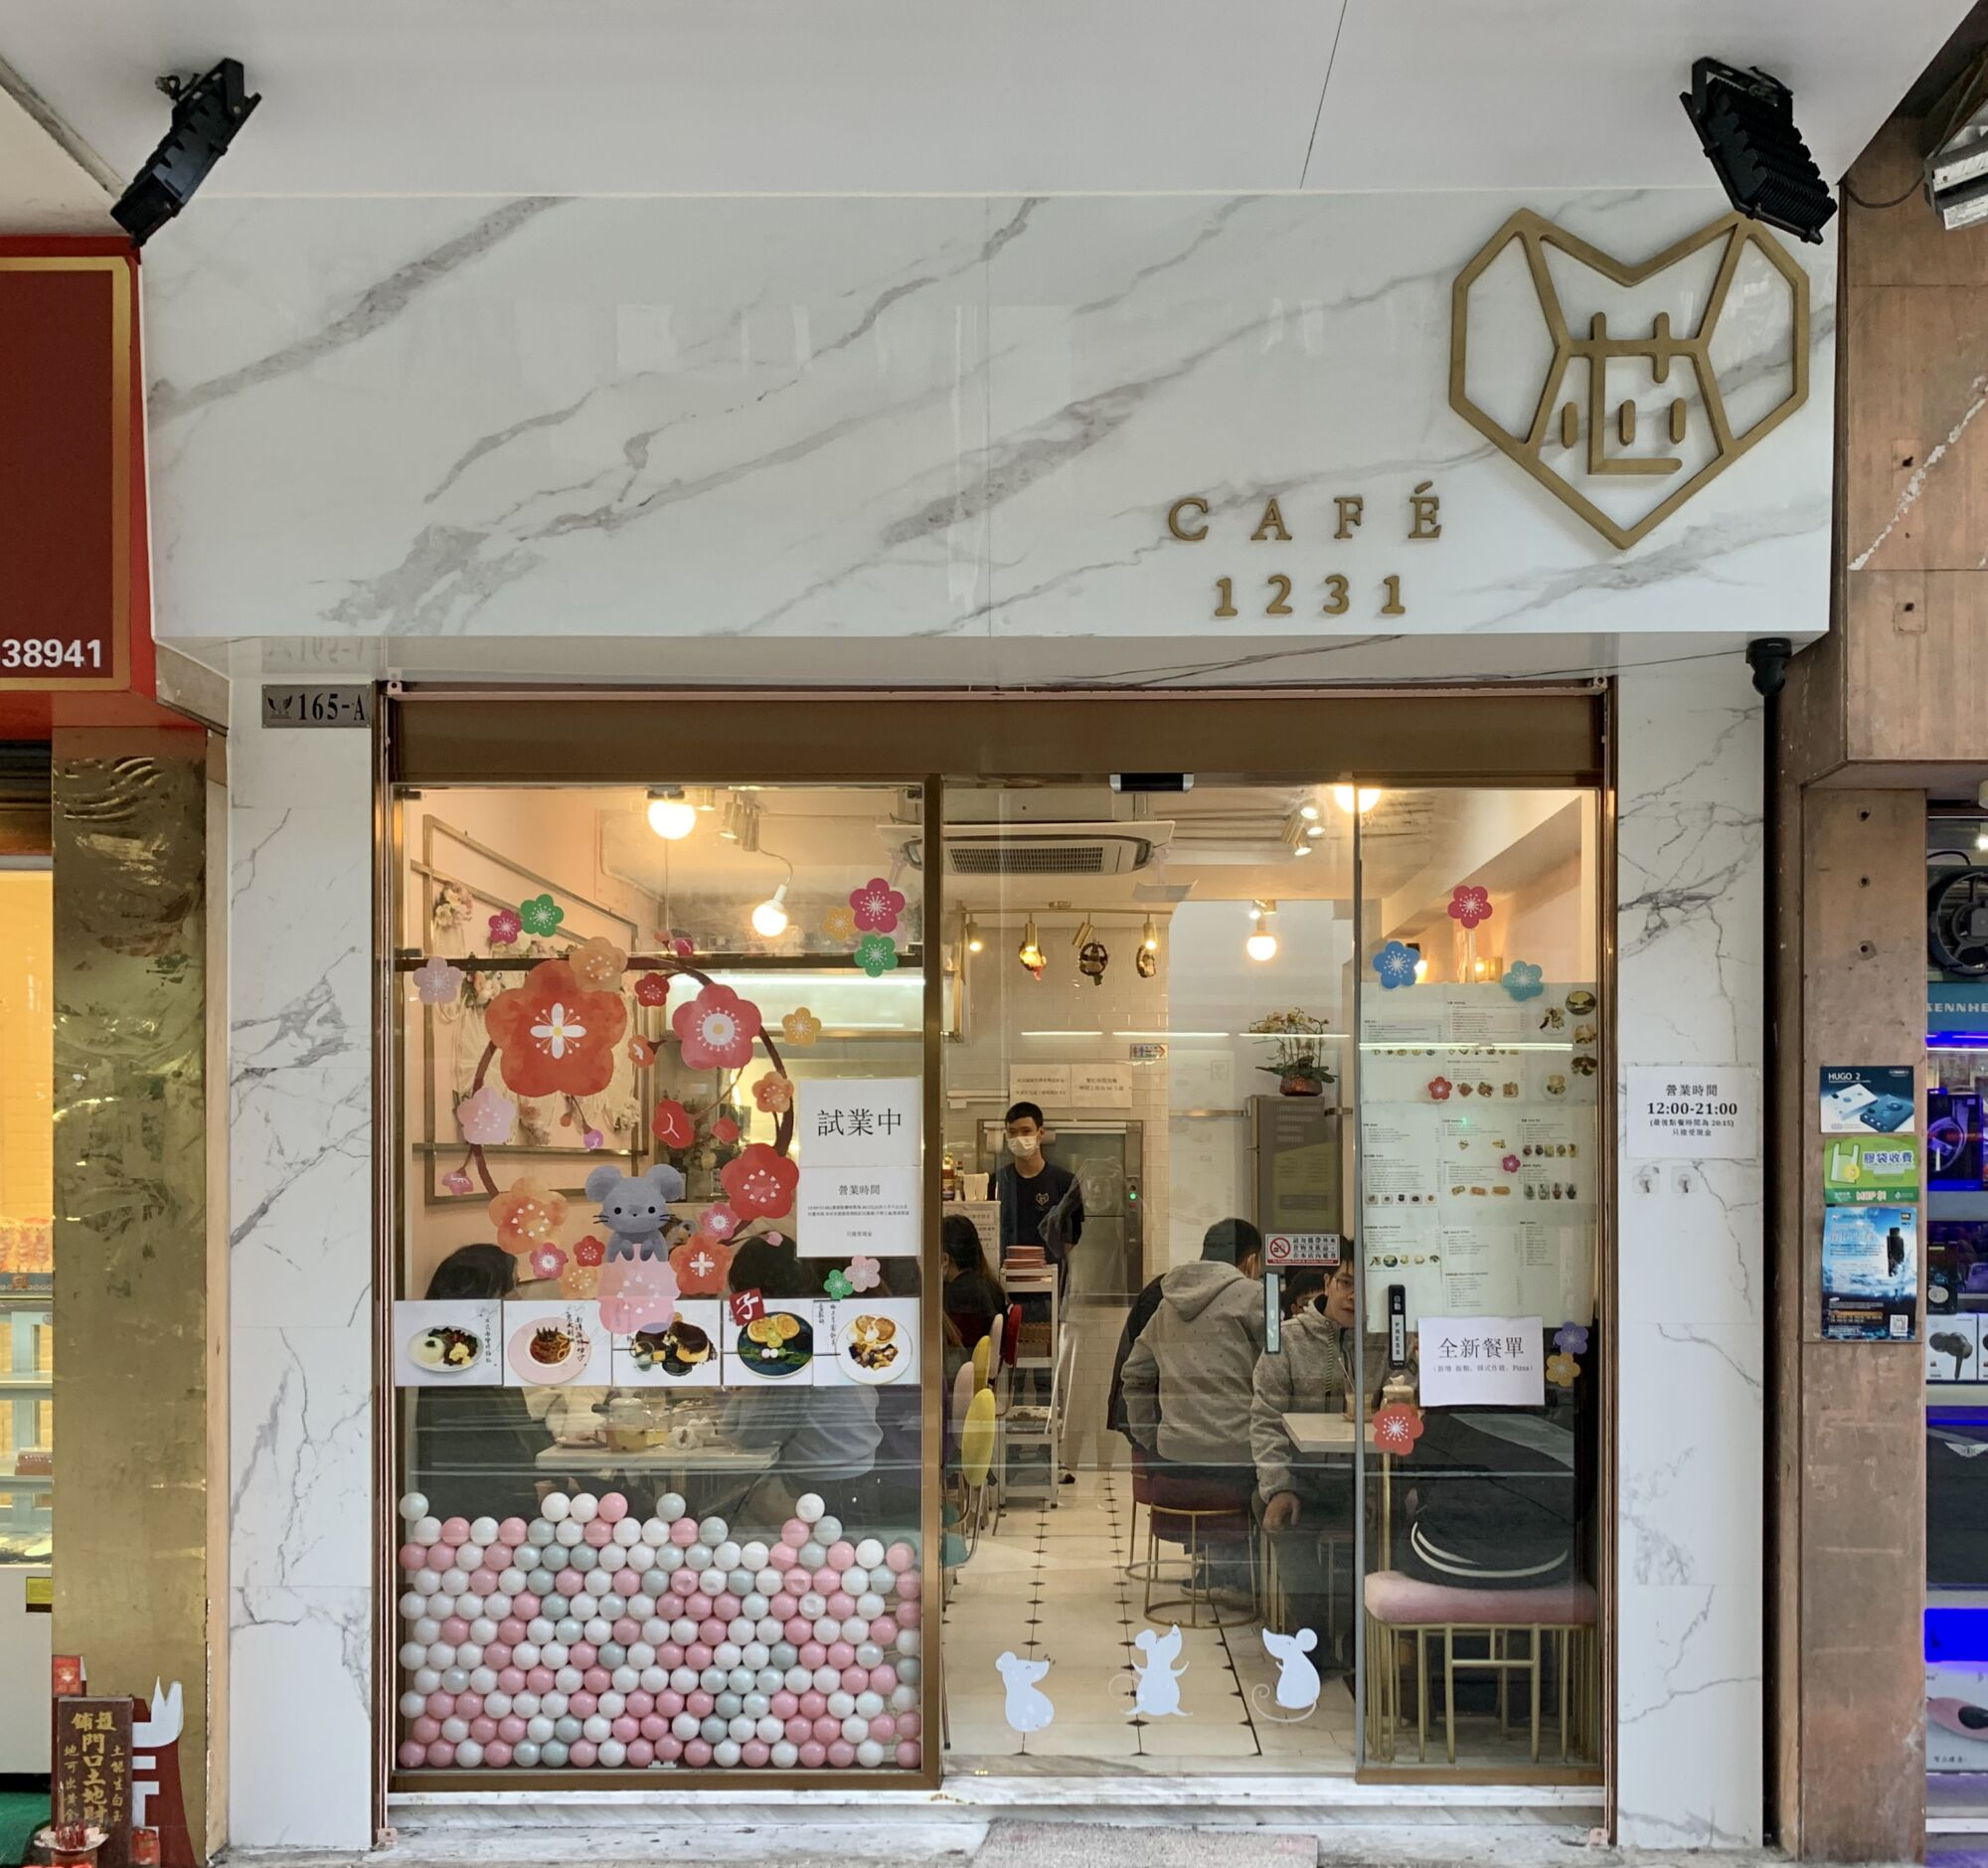 Cafe 1231 Exterior Photo Macau Lifestyle Horta e Costa